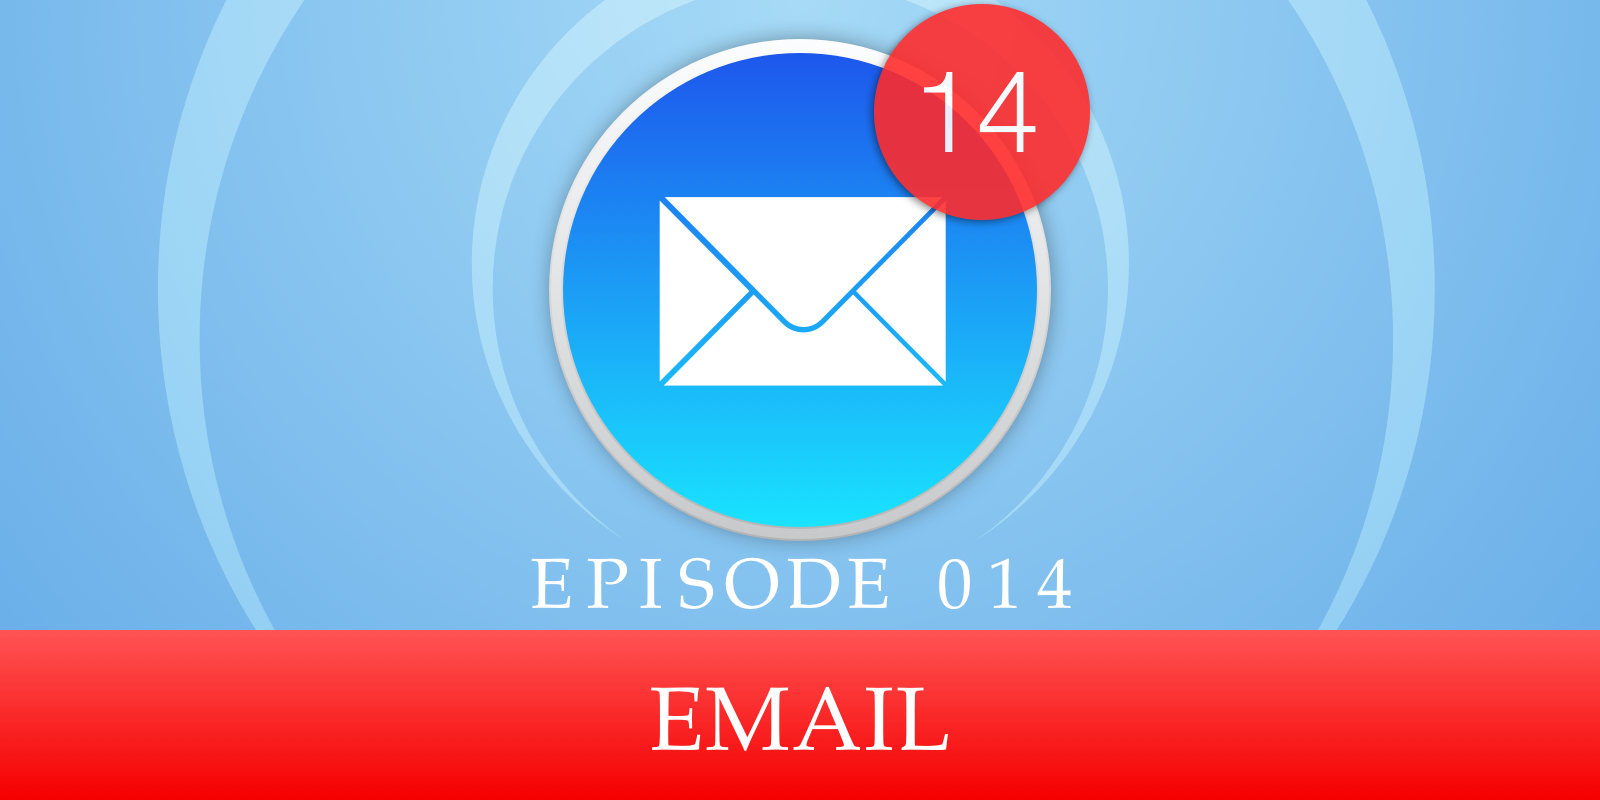 Episode 014: Email